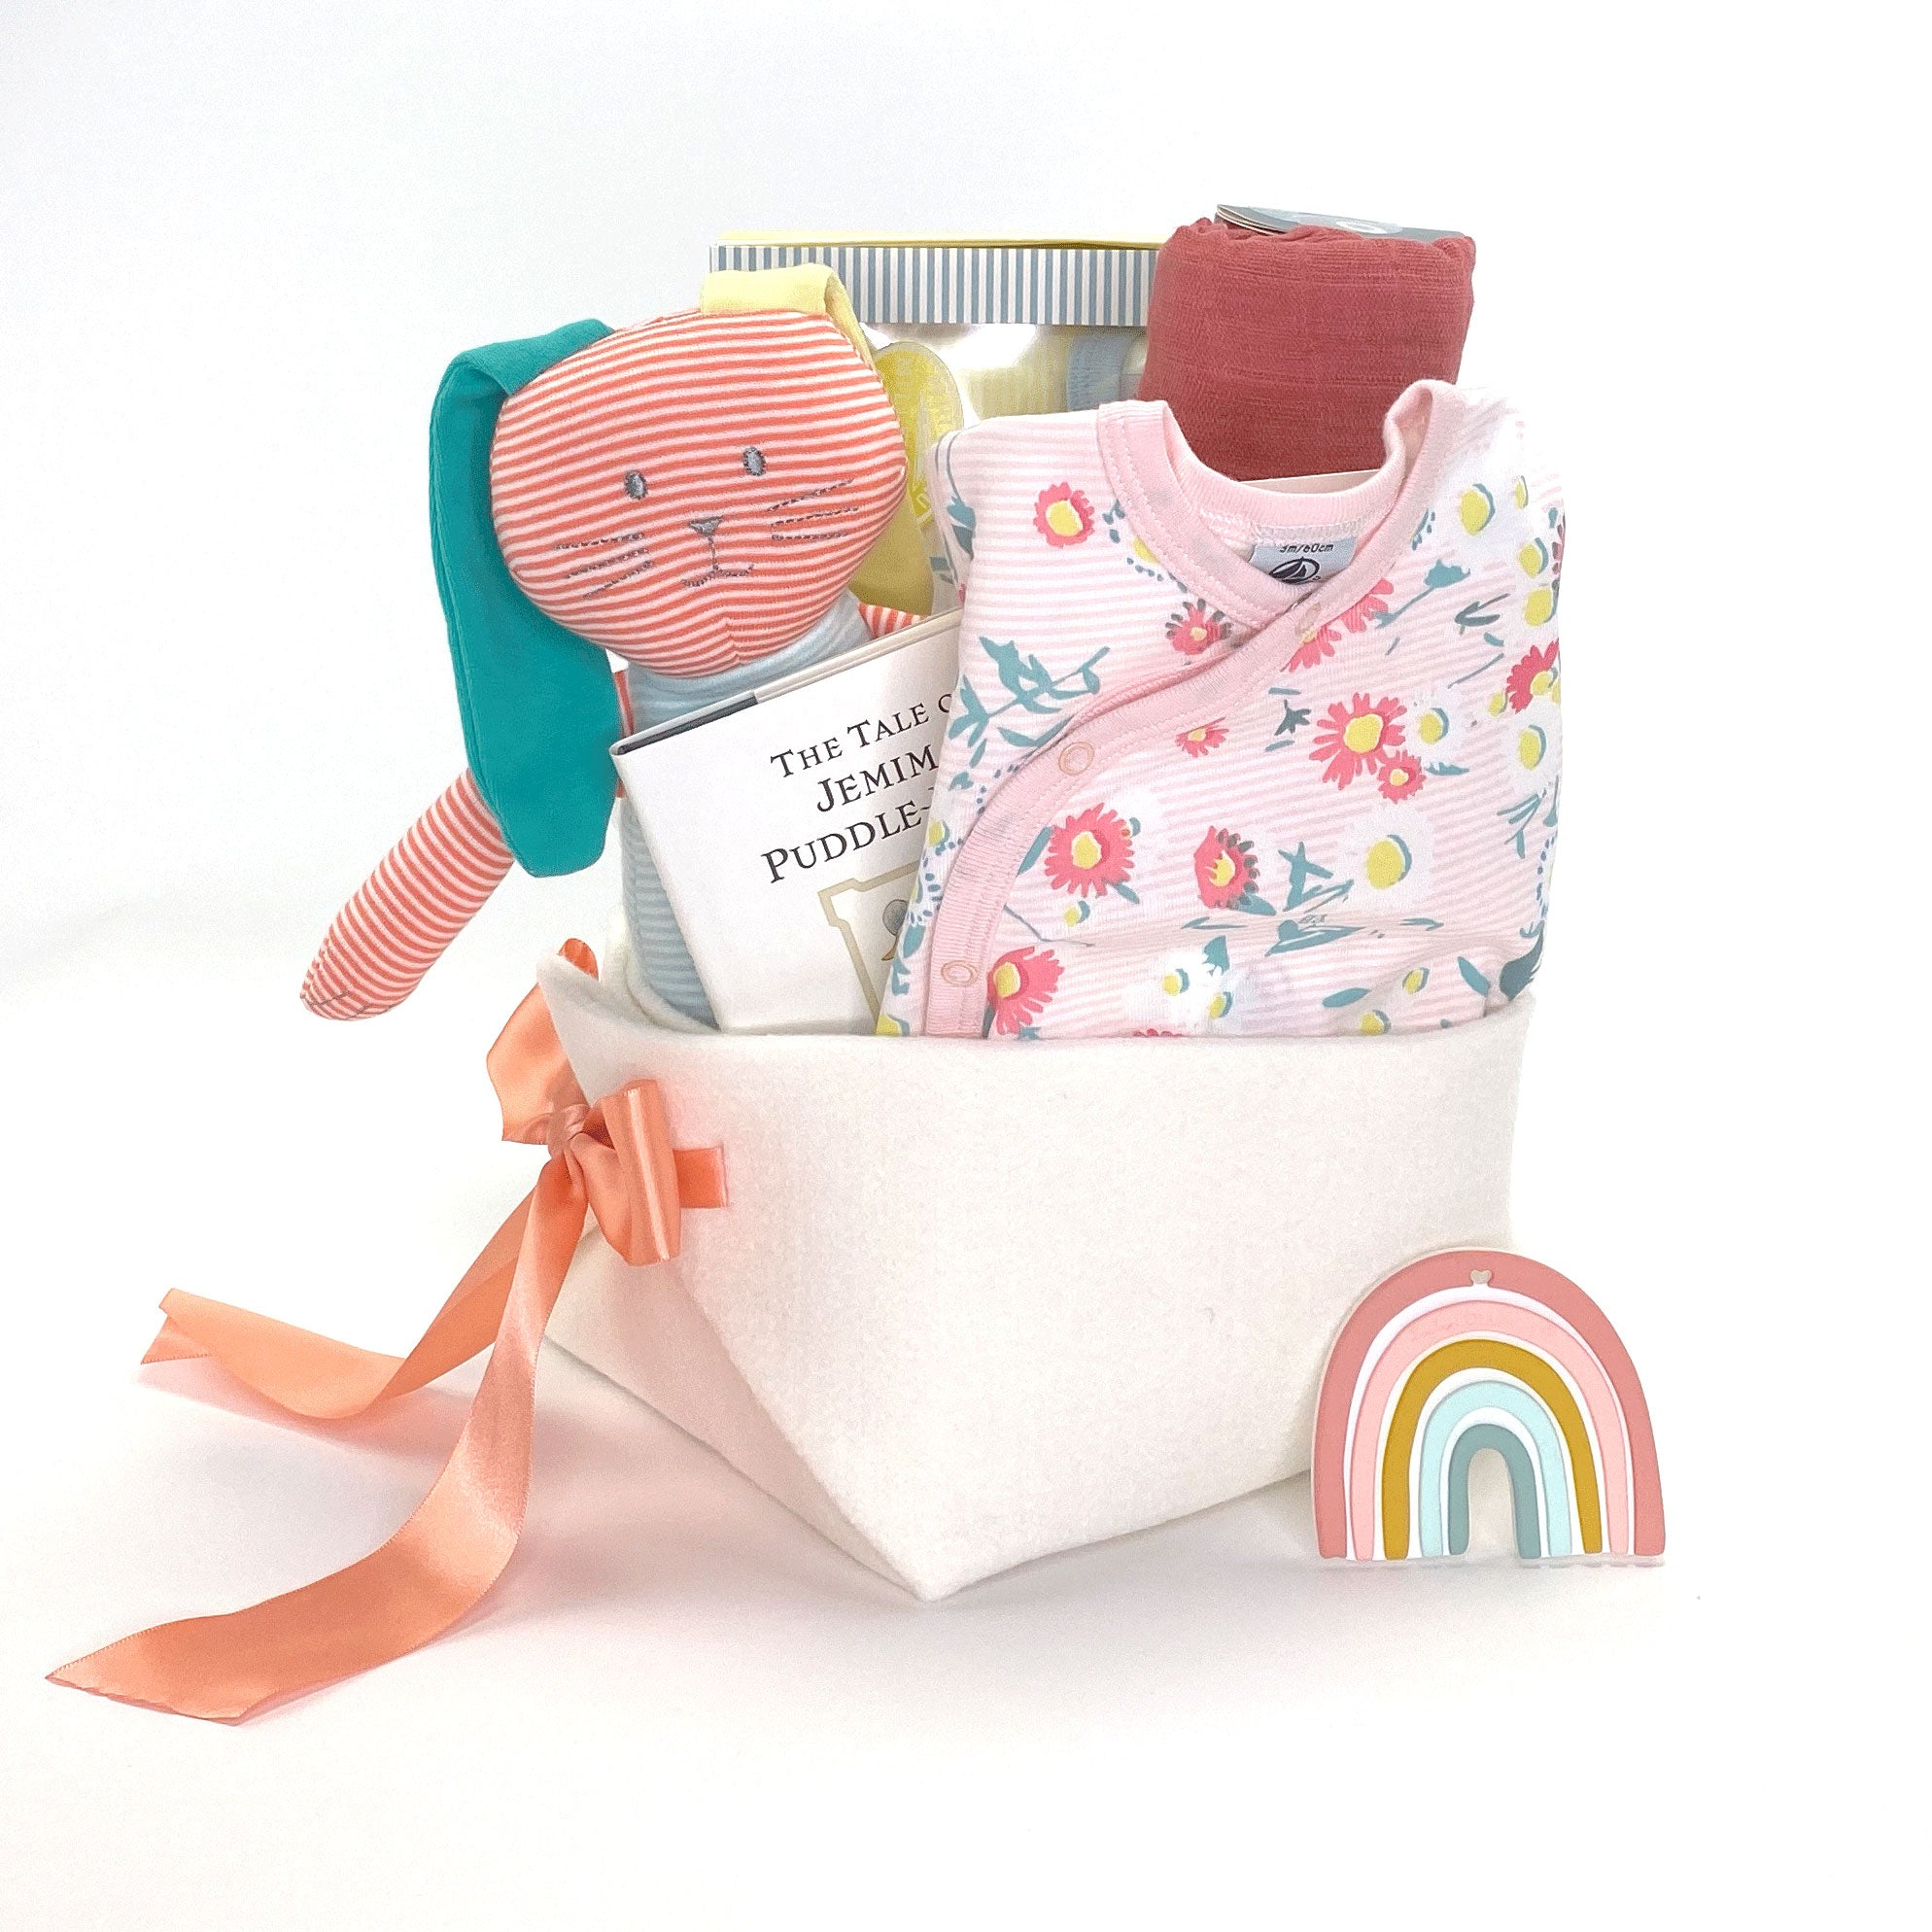 Luxury Baby Girl Gift Basket at Bonjour Baby Baskets featuring Petit Bateau